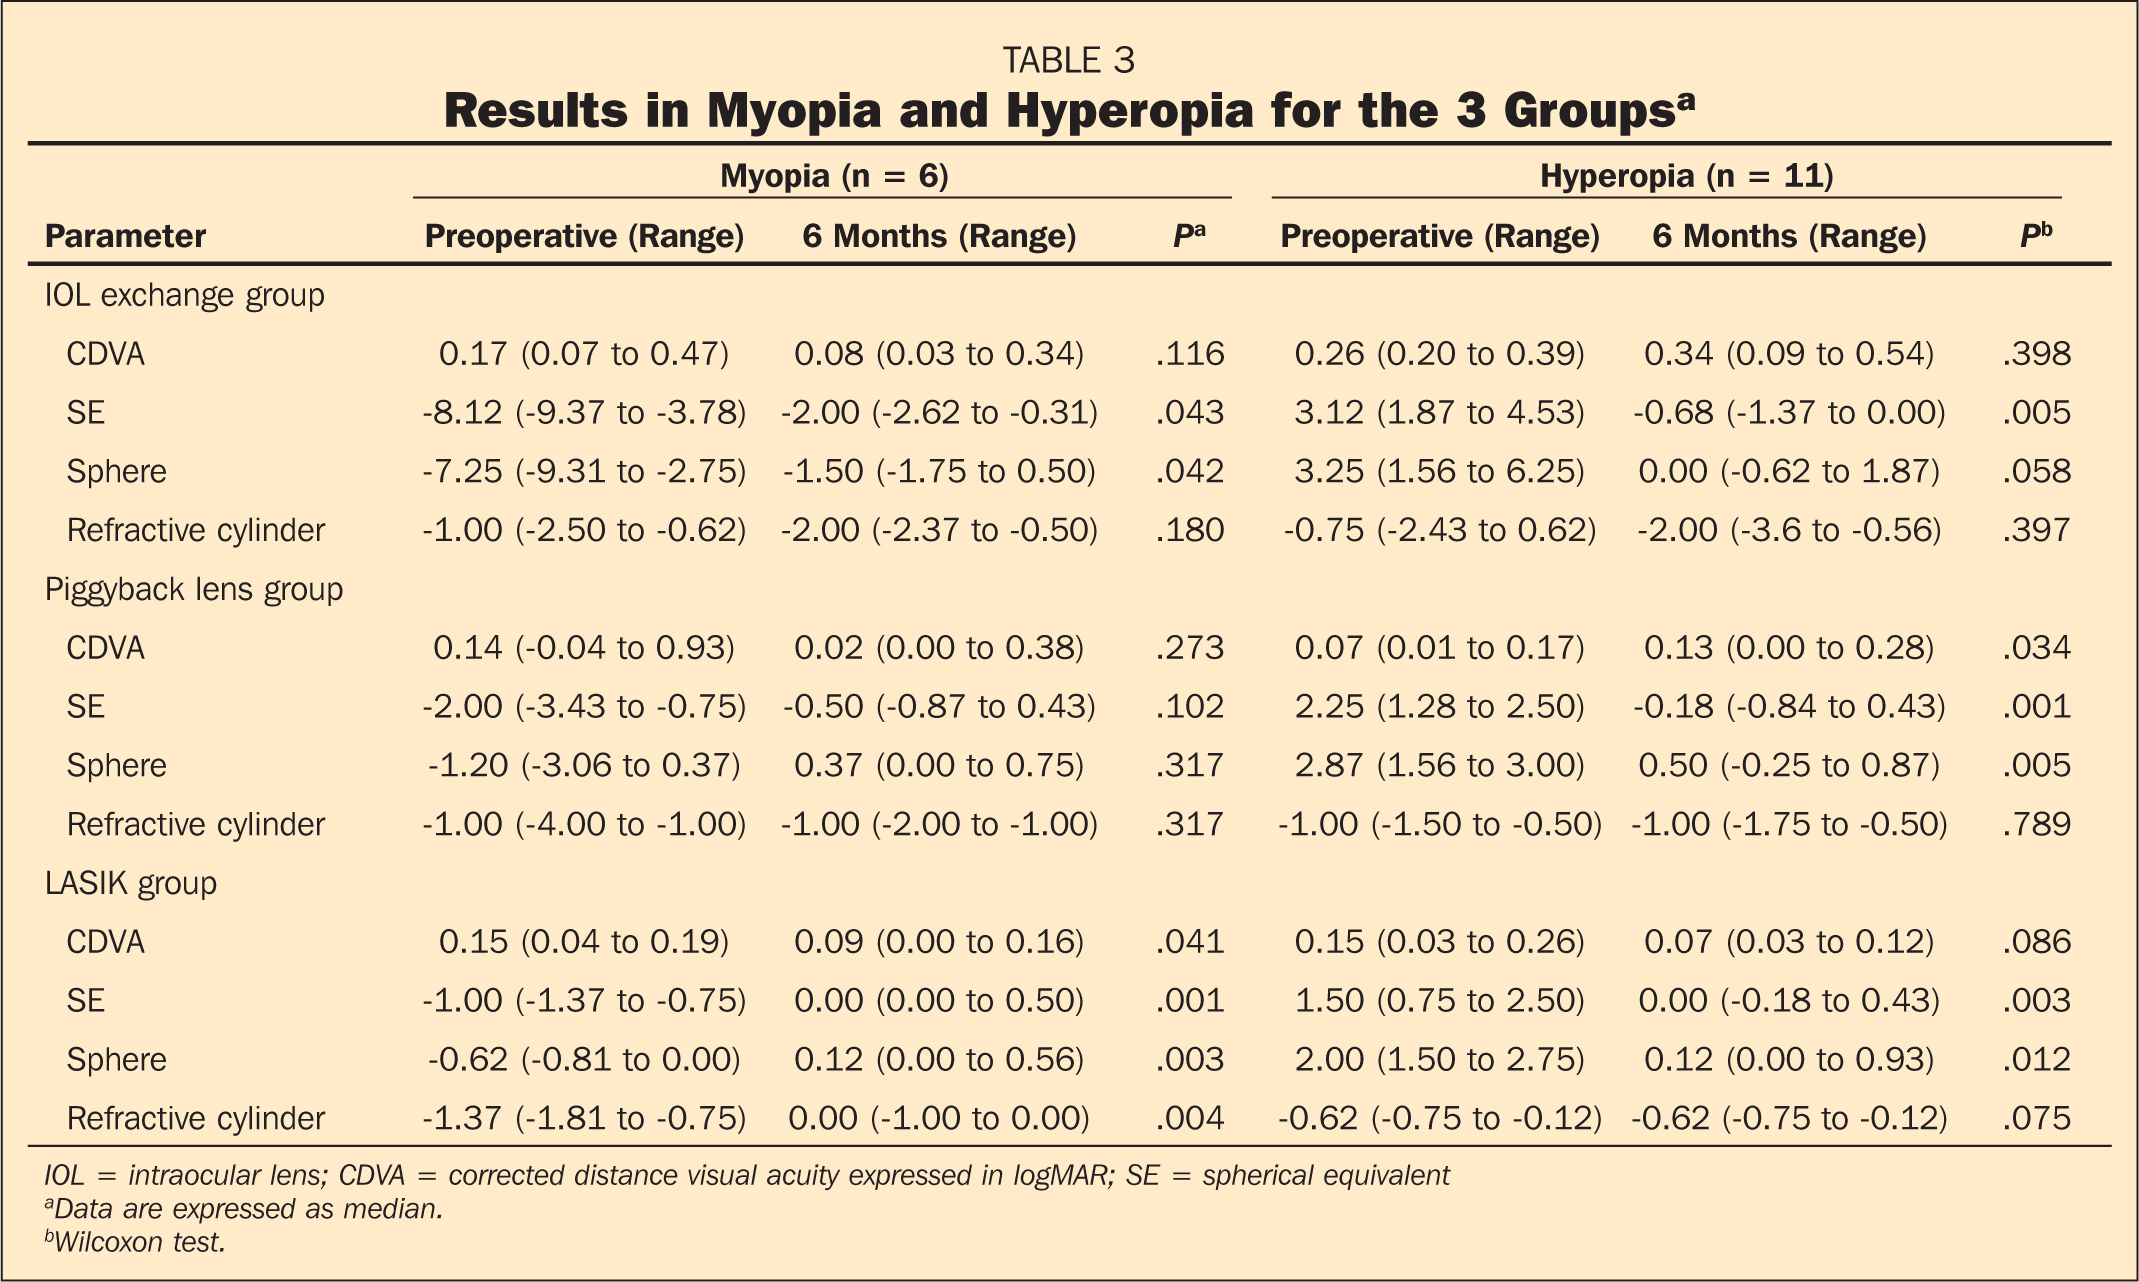 Results in Myopia and Hyperopia for the 3 Groupsa